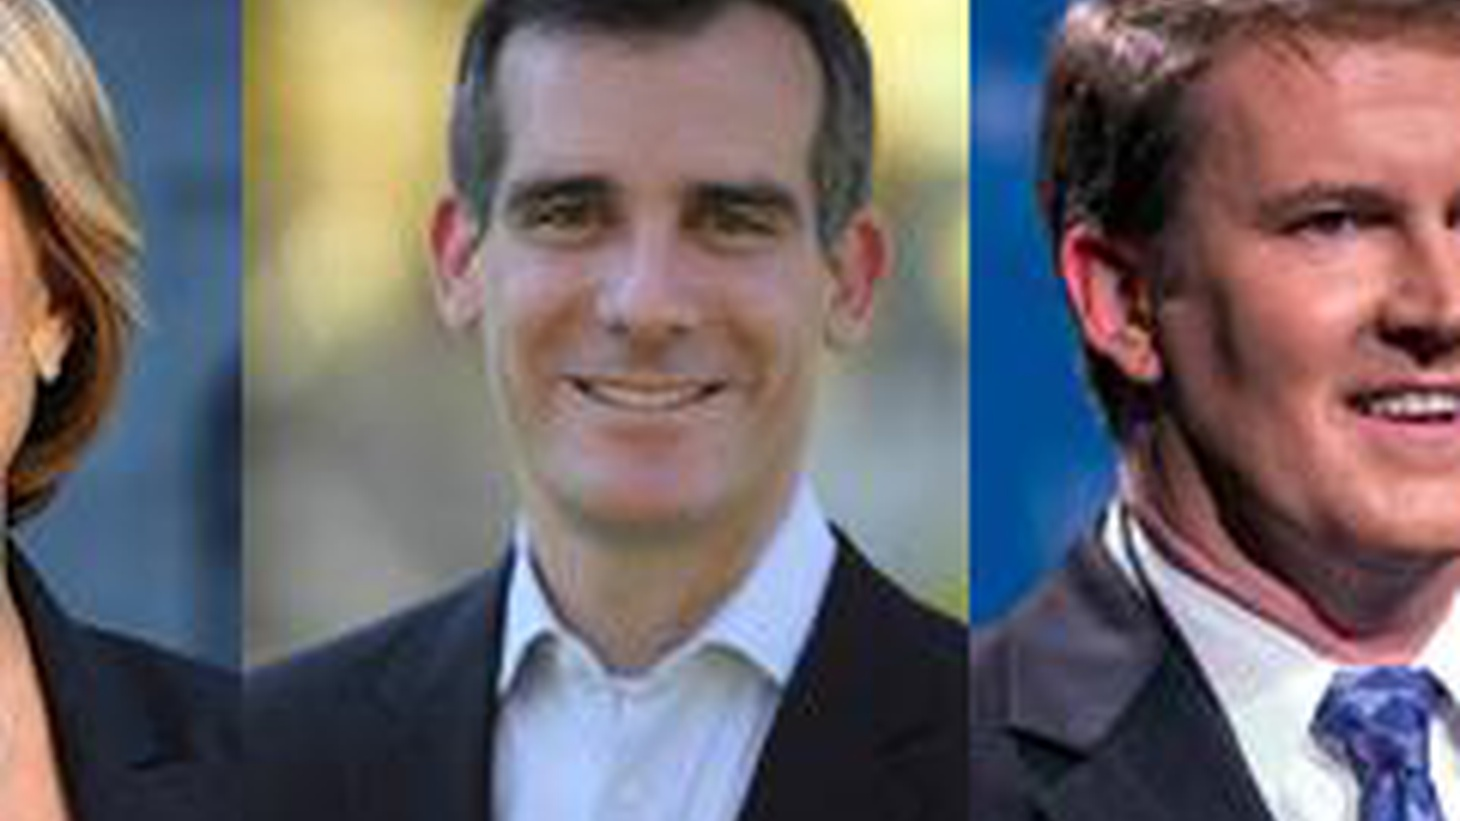 With the mayoral race one month away, we hear what Eric Garcetti and Wendy Gruel promised in private meetings of municipal union members and why labor is so important in LA.